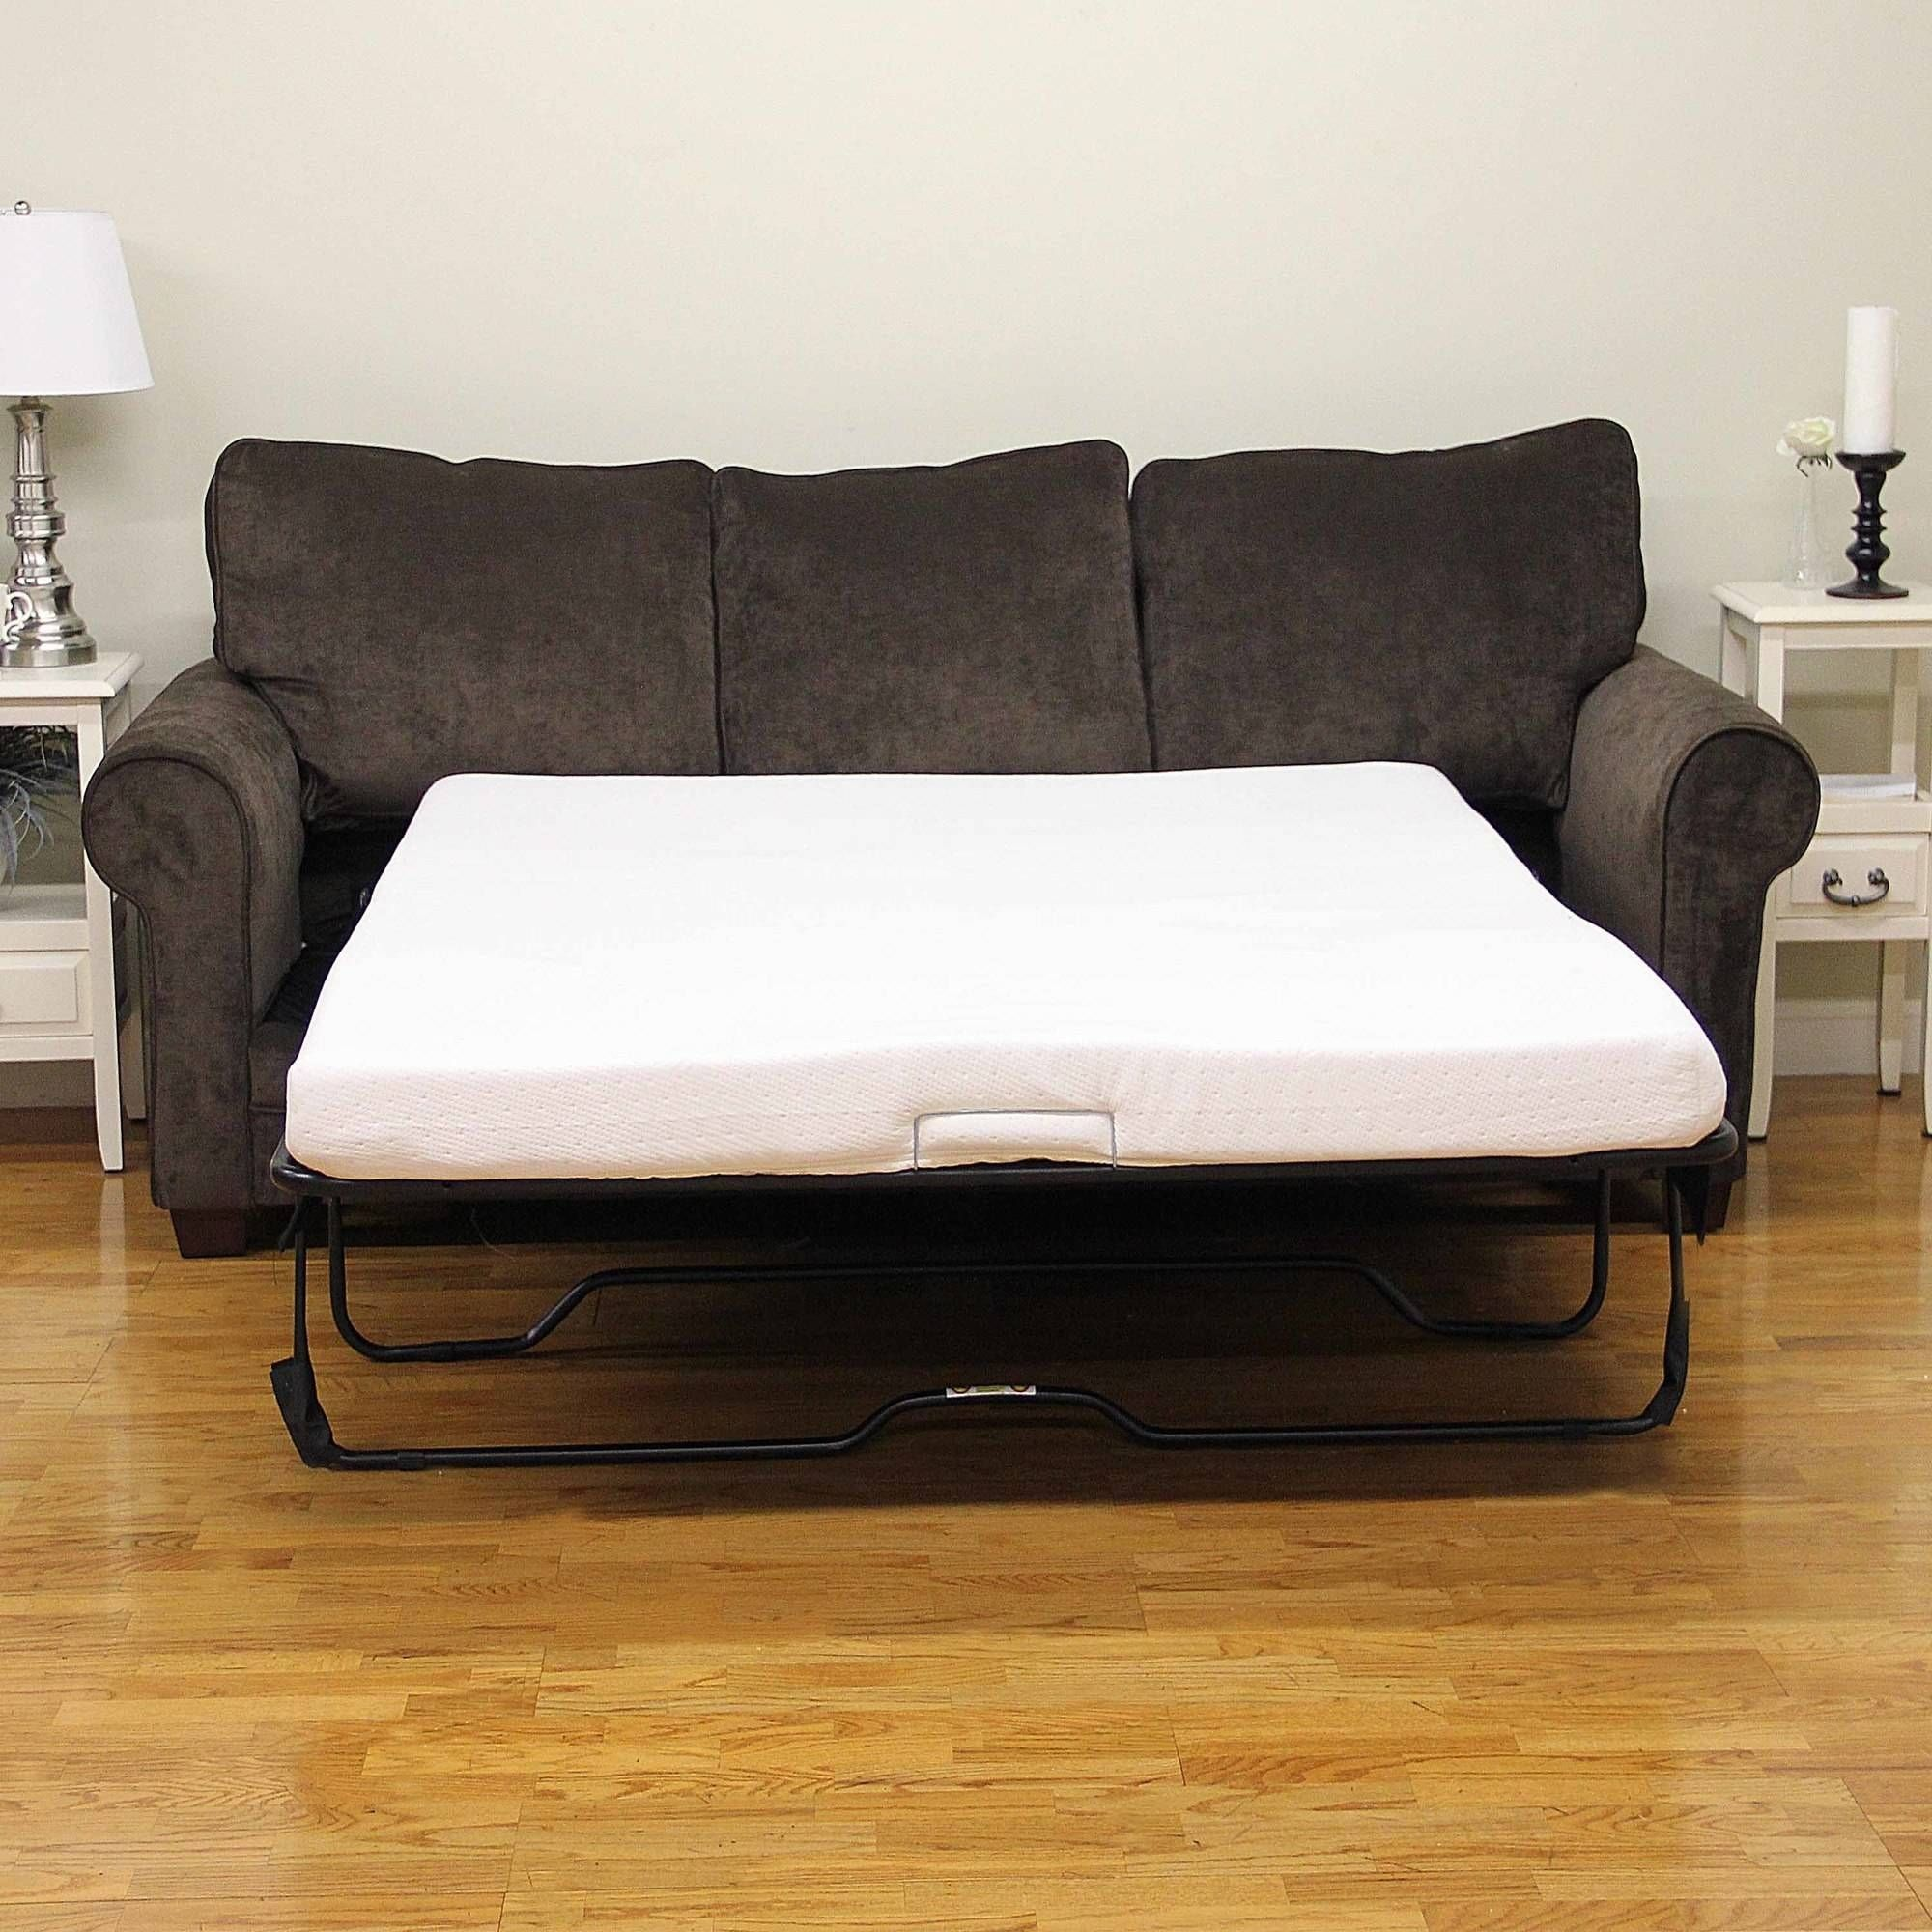 Queen Sofa Bed With Memory Foam Mattress